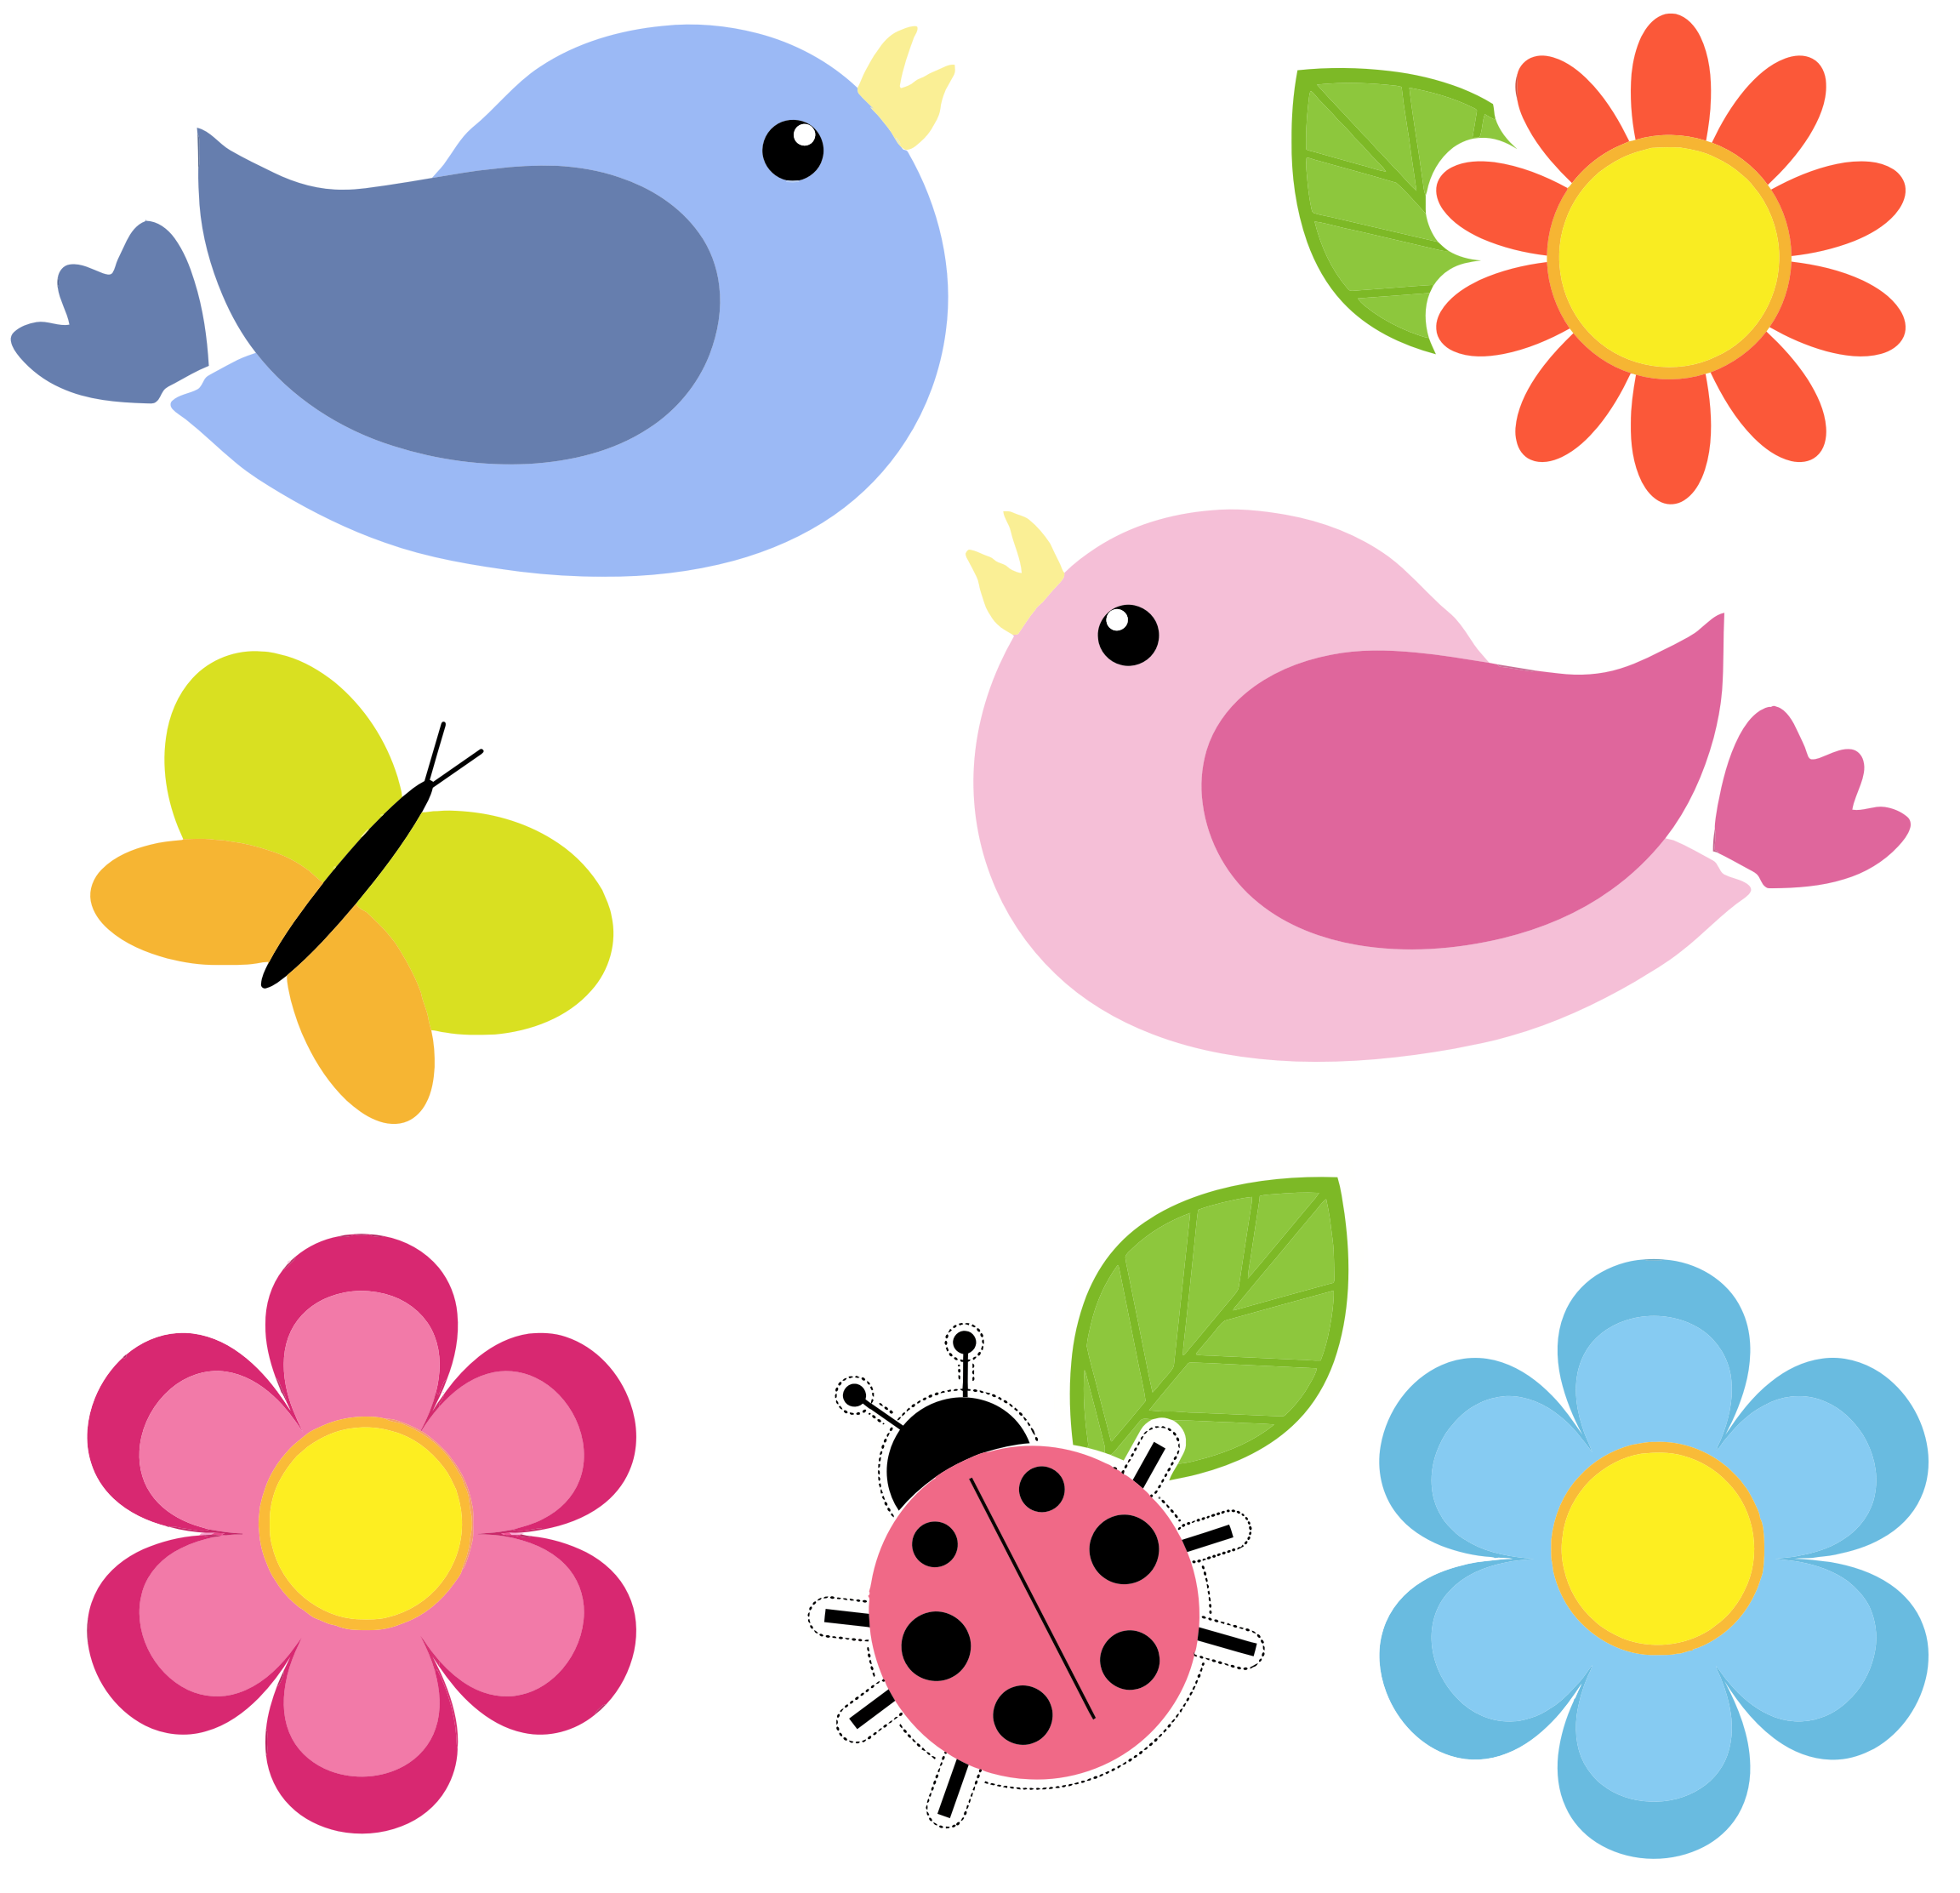 Missions clipart background. Birds butterfly ladybug and